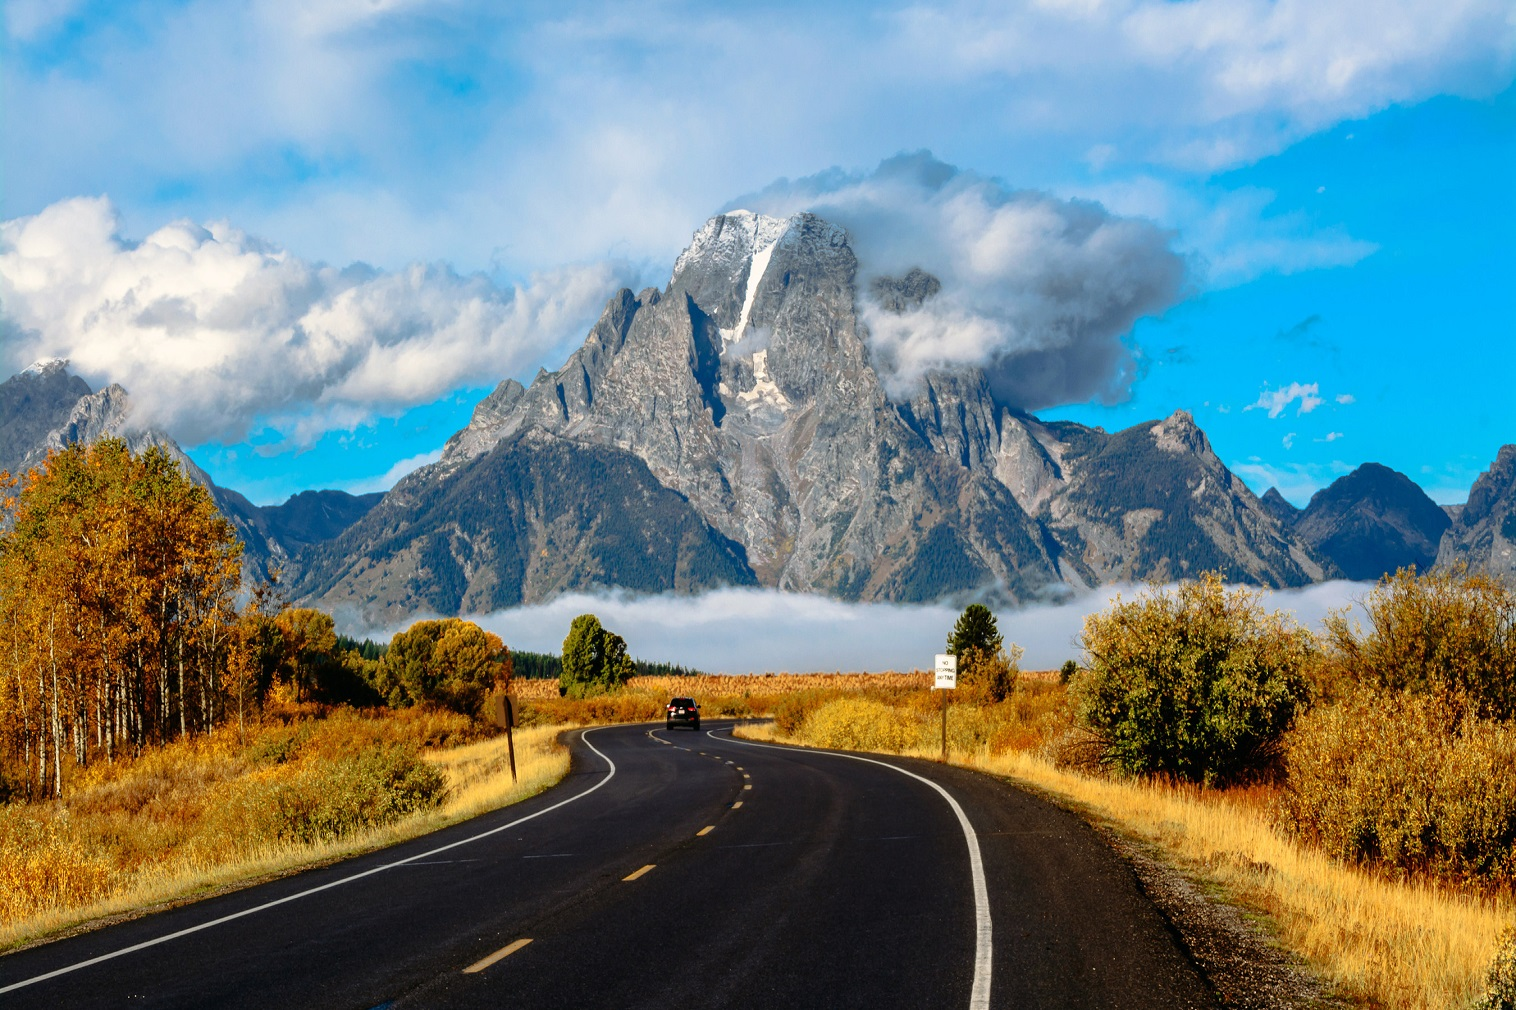 A road trip to the Grand Tetons is a vacation option a travel advisor can help you plan, including guided tours and luxury resorts along the way.